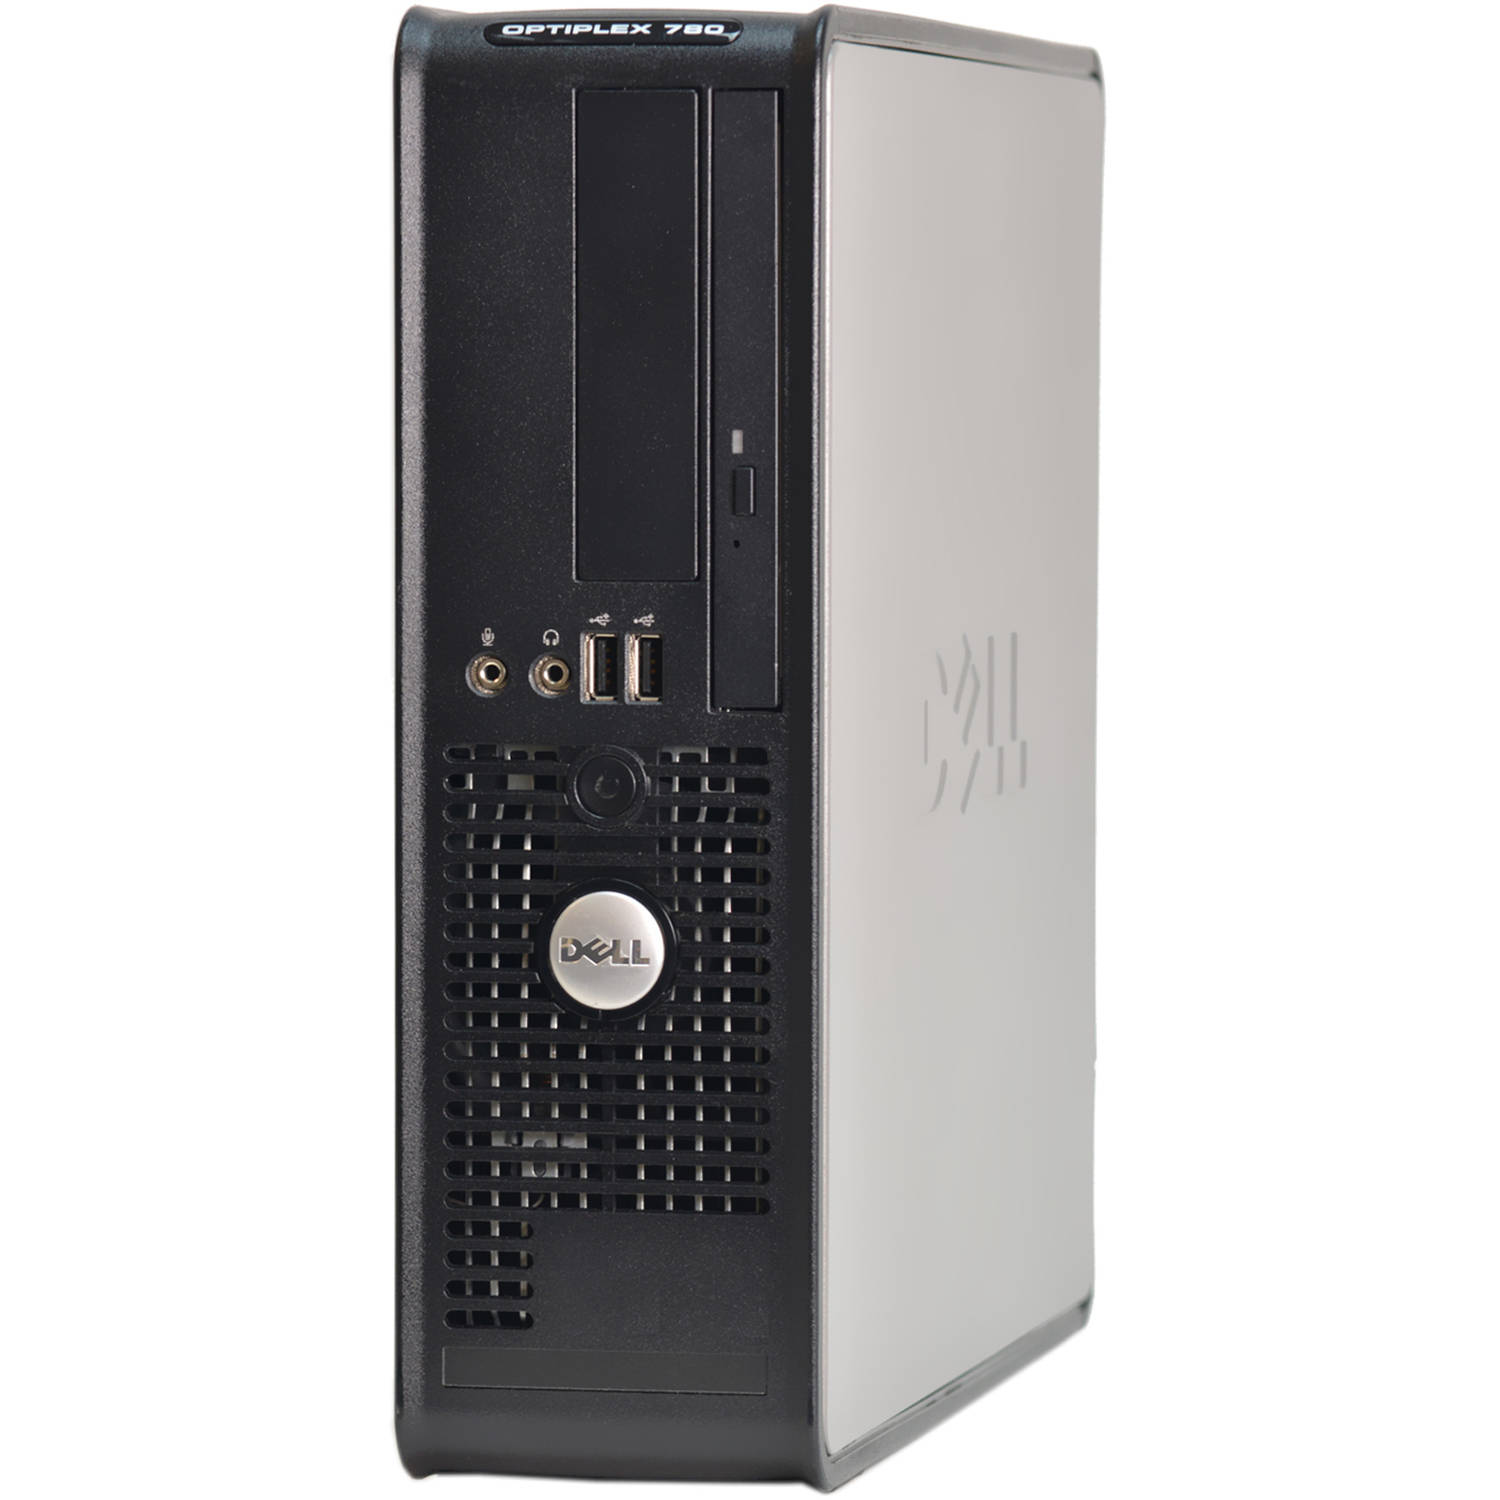 Refurbished Dell 780 Small Form Factor Desktop PC with Intel Core ...